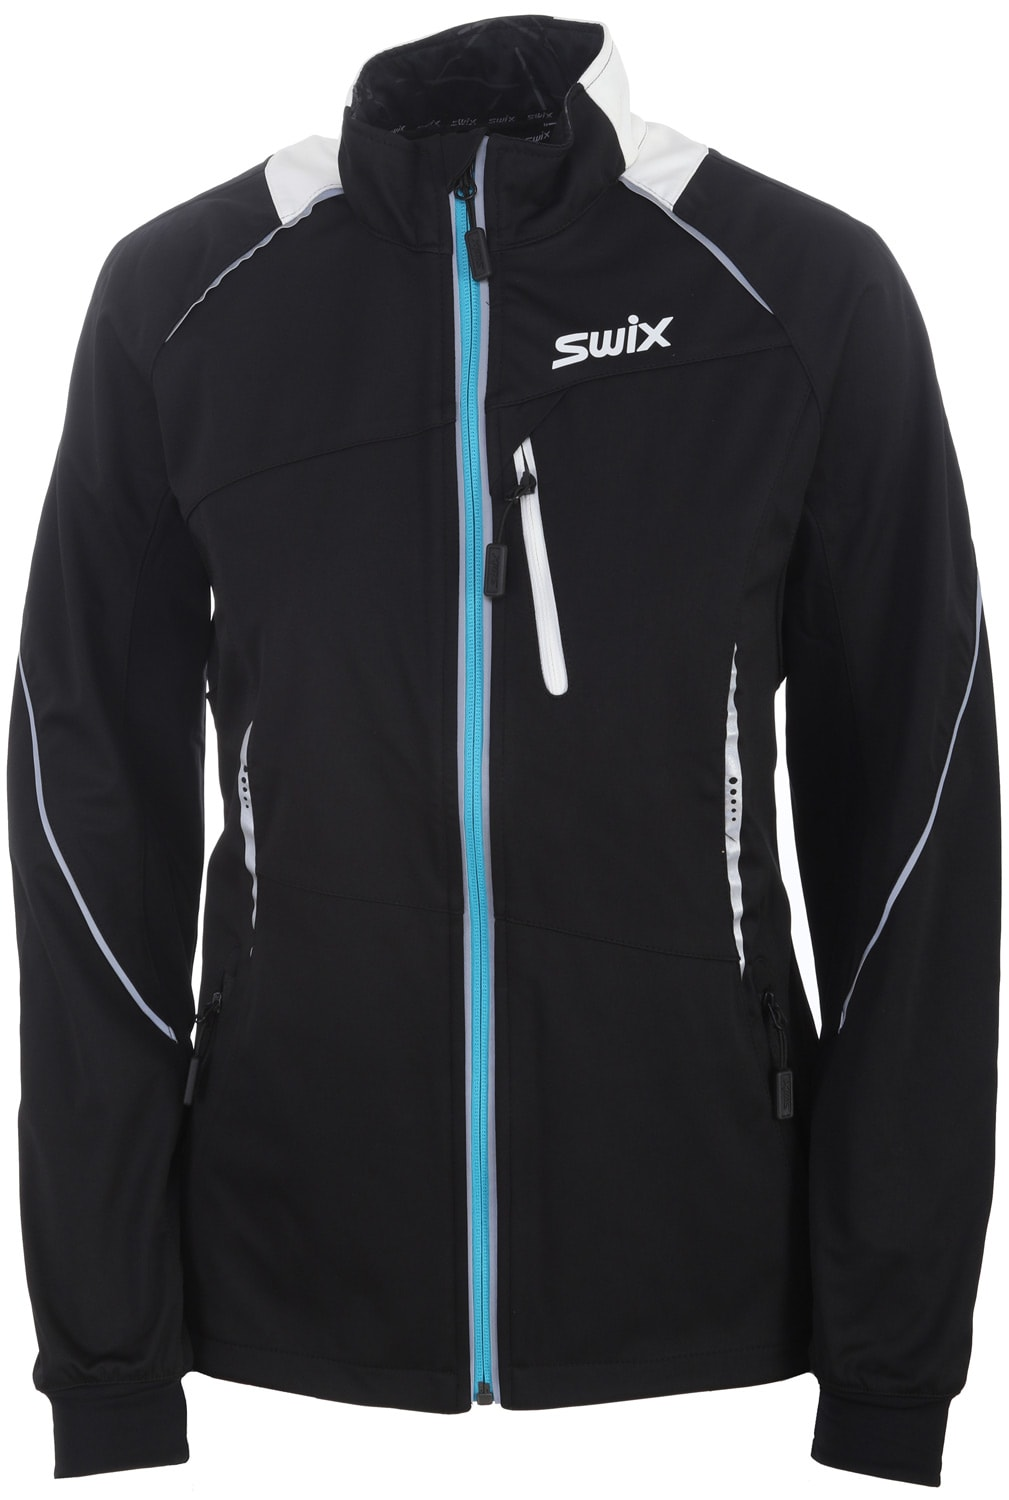 Swix Delda Light Xc Ski Jacket Womens